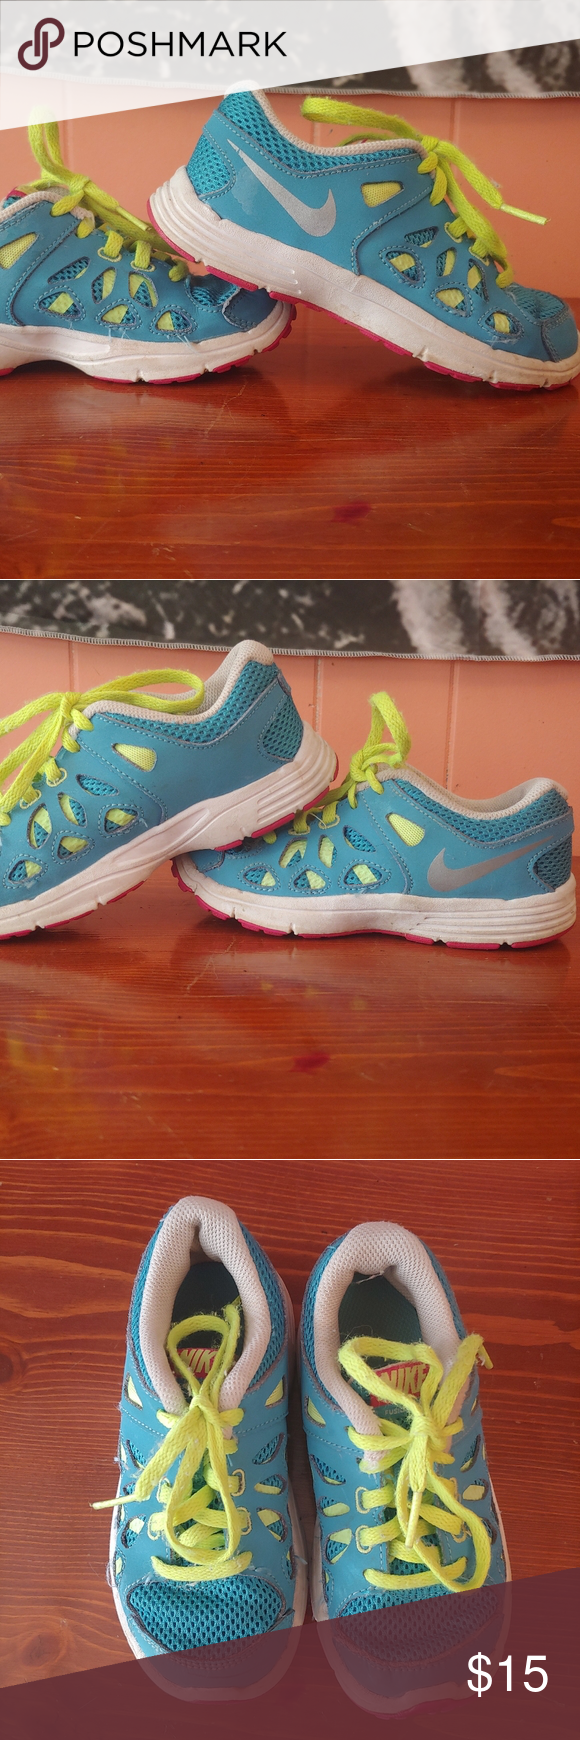 Nike Tennis Shoes Girls Size 11 in 2020